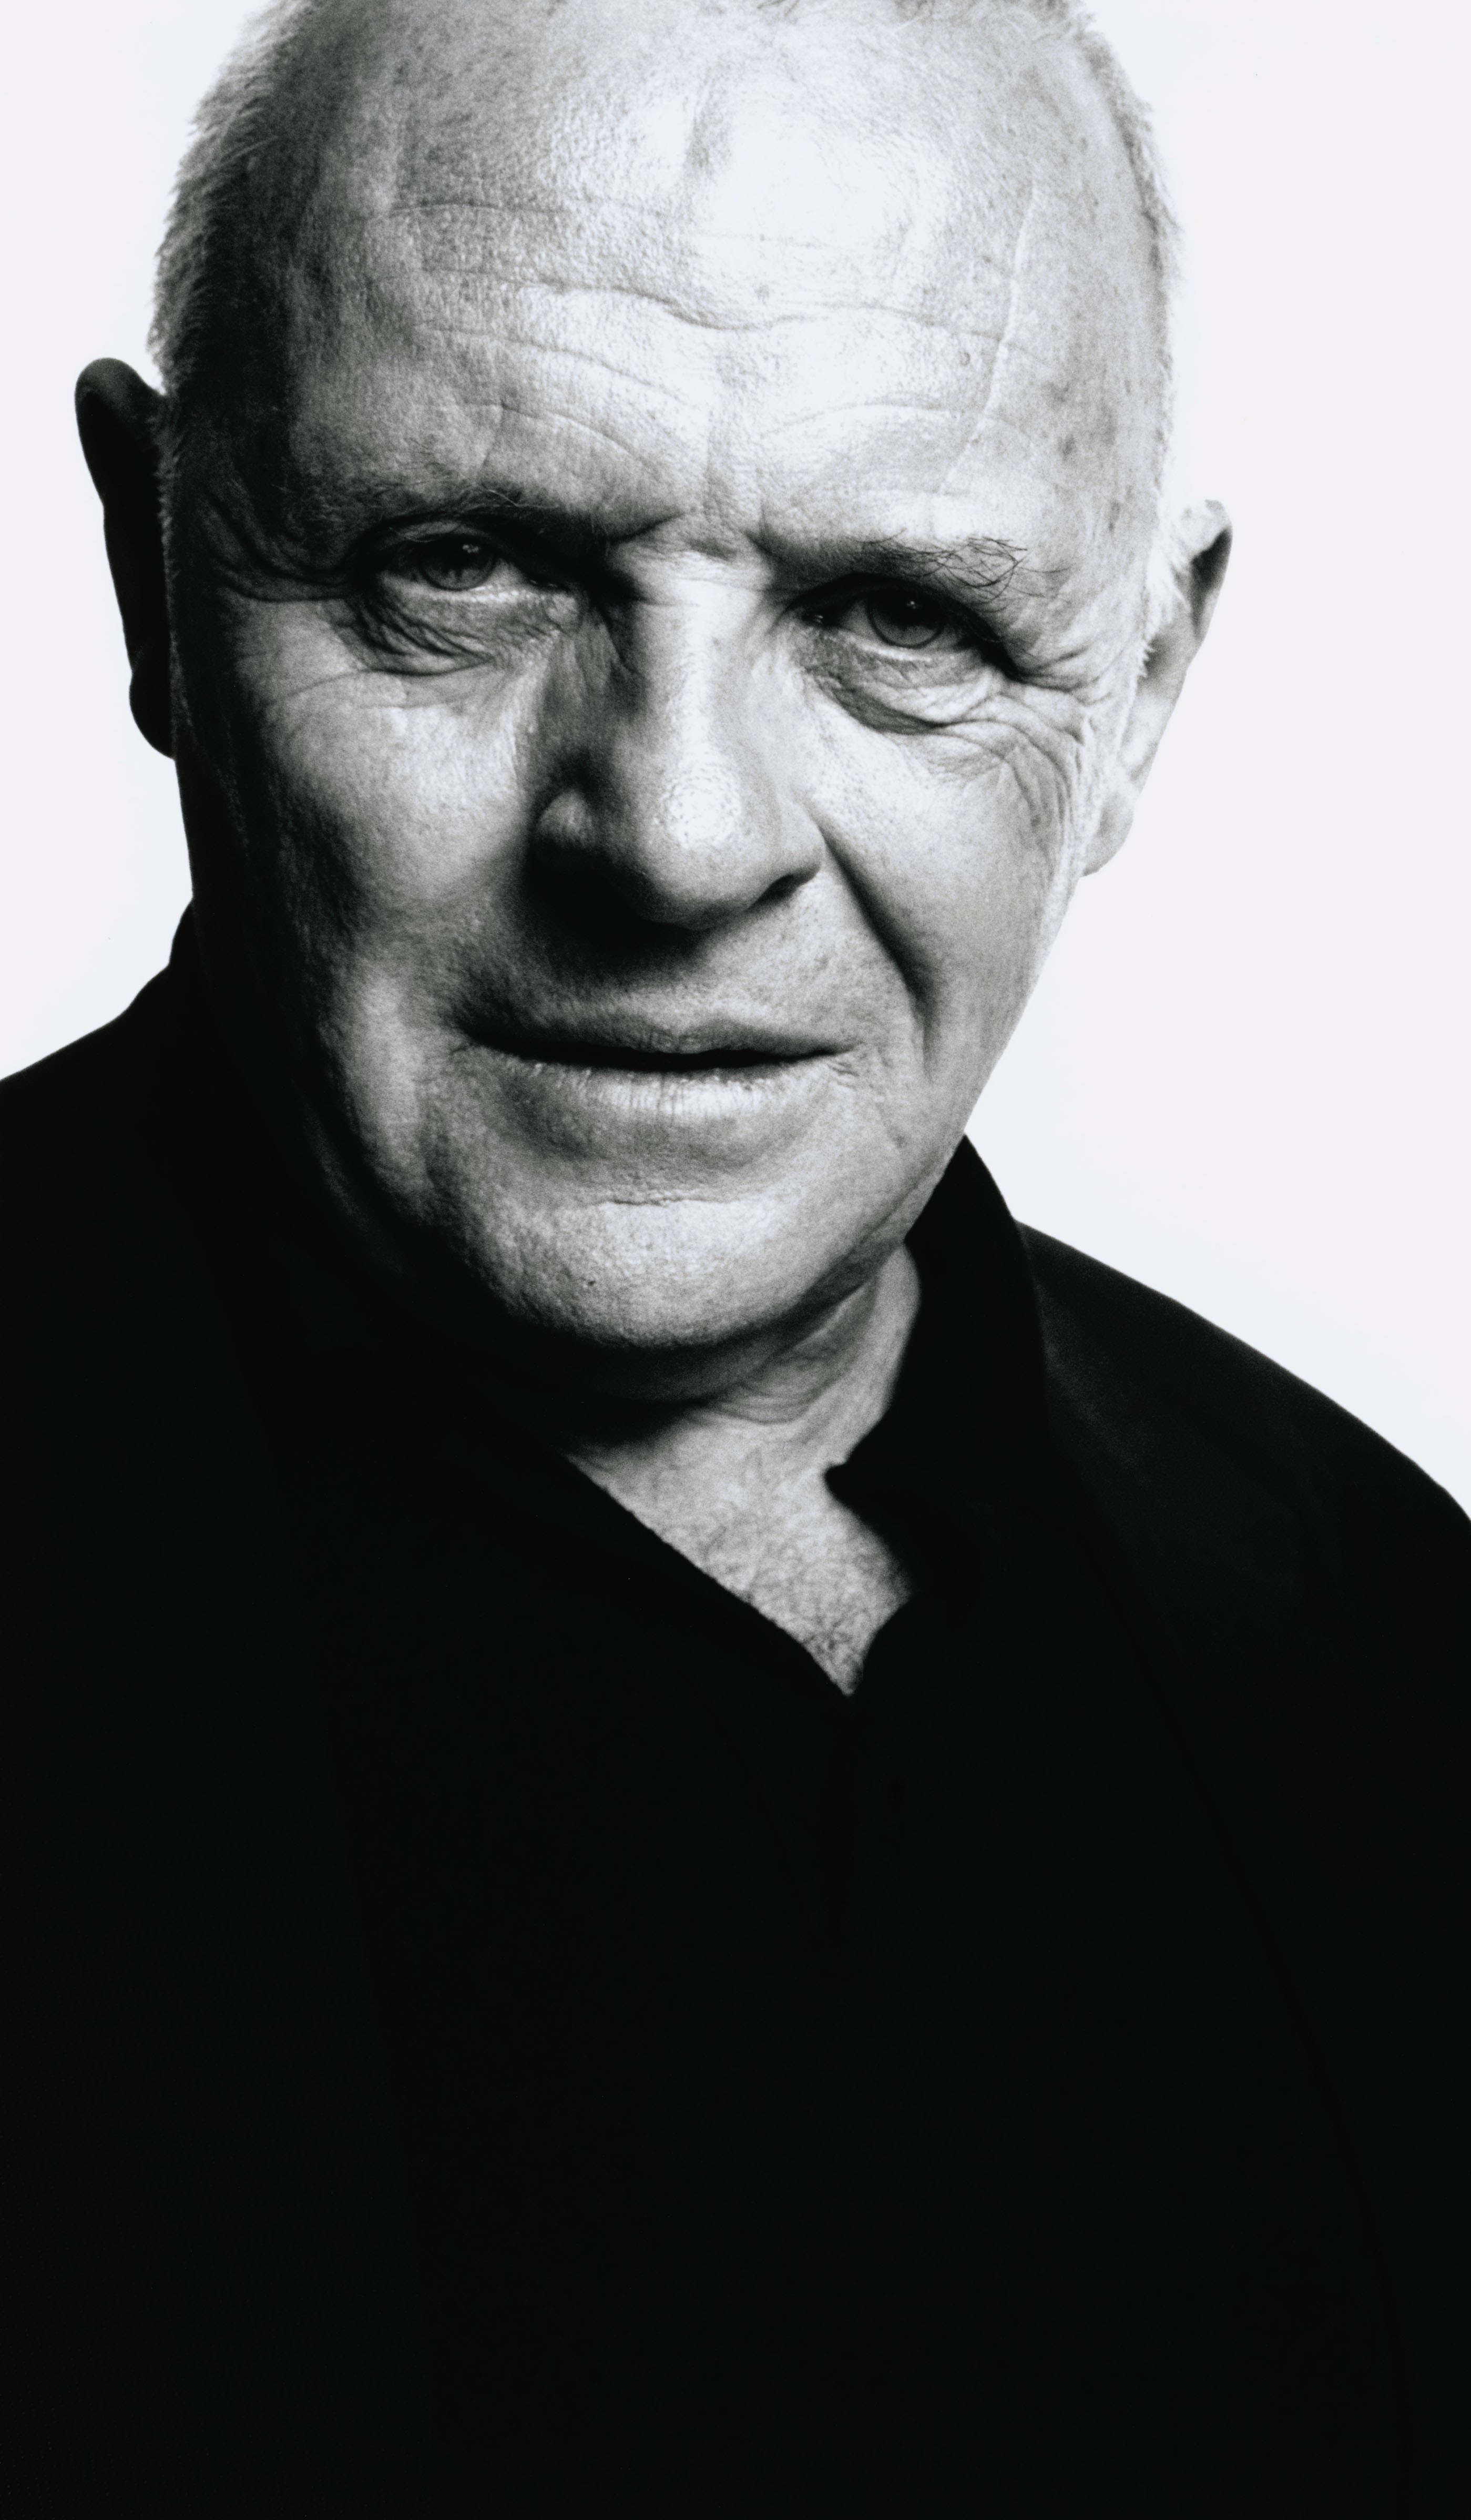 Anthony Hopkins photo 39 of 63 pics, wallpaper - photo ... Anthony Hopkins